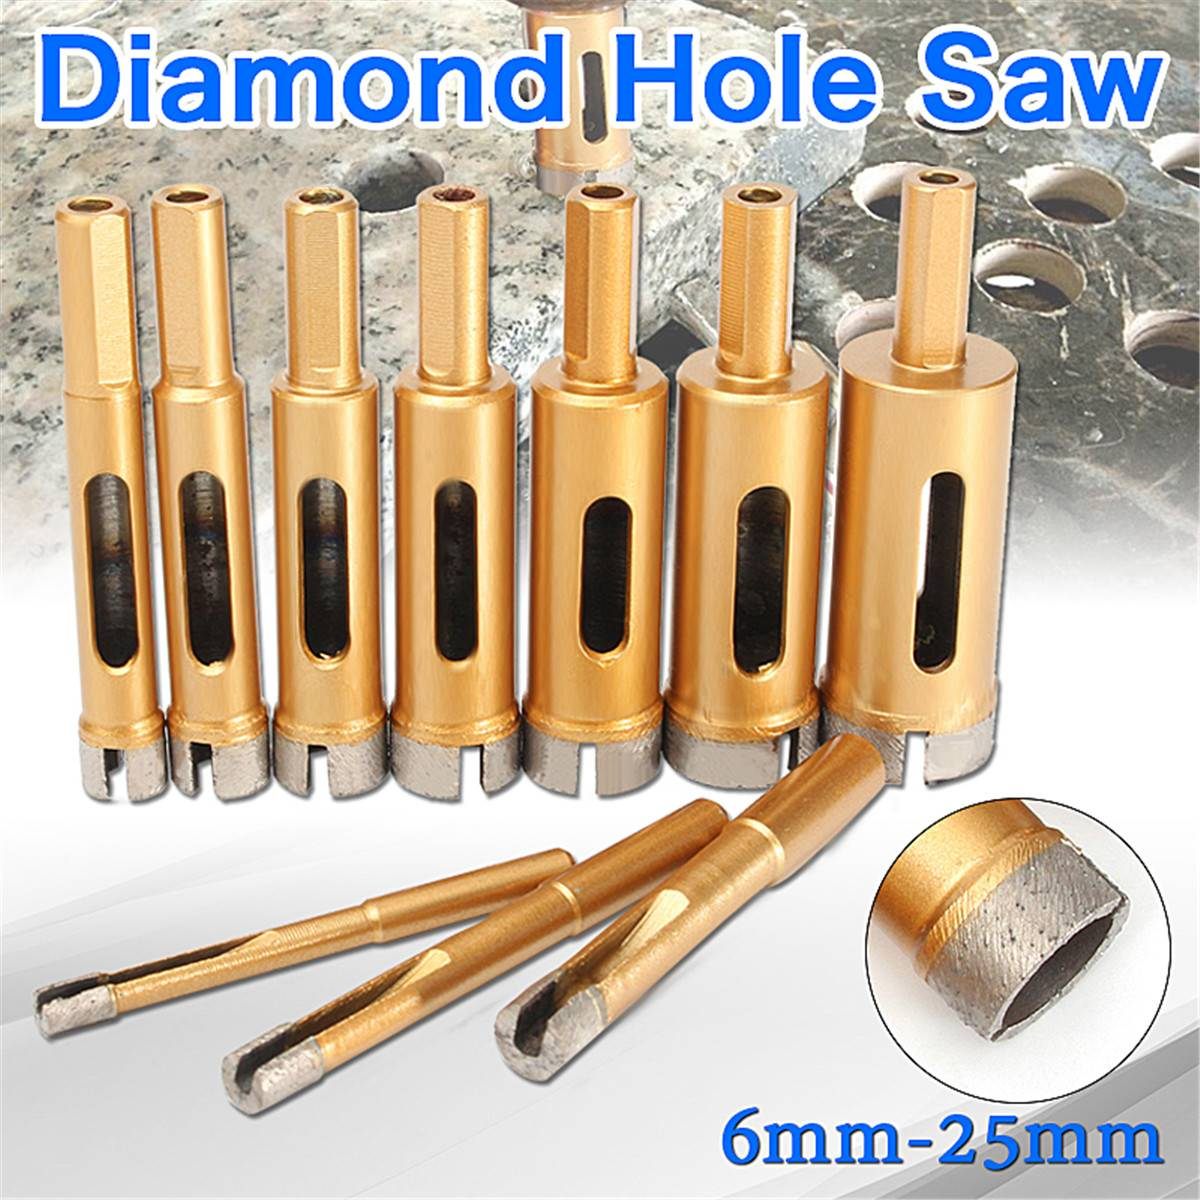 6mm-25mm Diamond Drill Bit Hole Saw Tile Glass Marble Glass Hole Cutter for Marble Granite Tile Ceramic Glass6mm-25mm Diamond Drill Bit Hole Saw Tile Glass Marble Glass Hole Cutter for Marble Granite Tile Ceramic Glass